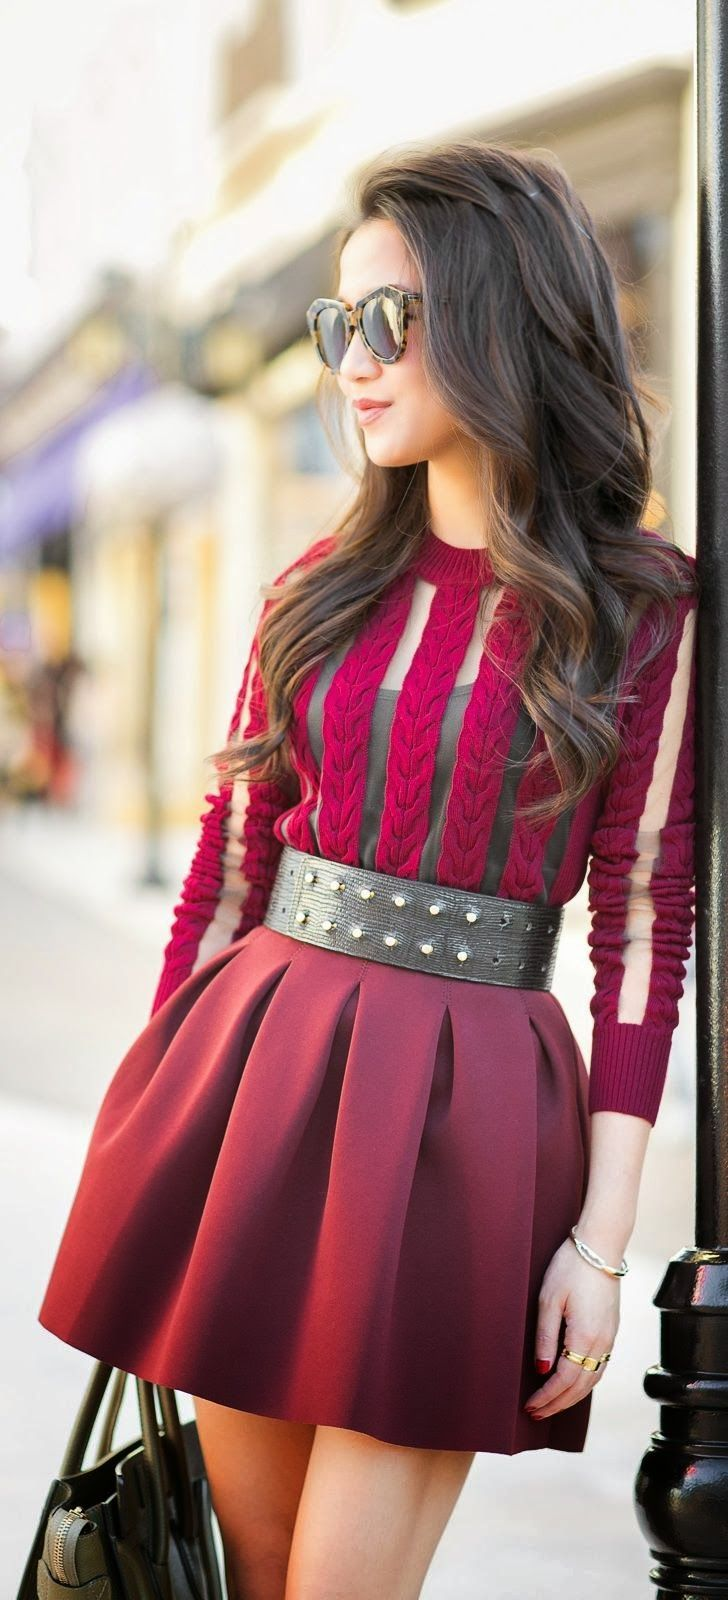 Dress in deep burgundy with very different details. Bodice has velvety vertical stripes alternating with sheer insets and the skirt is of an almost sailcloth stiffness that nonetheless looks soft. Fabulous belt!